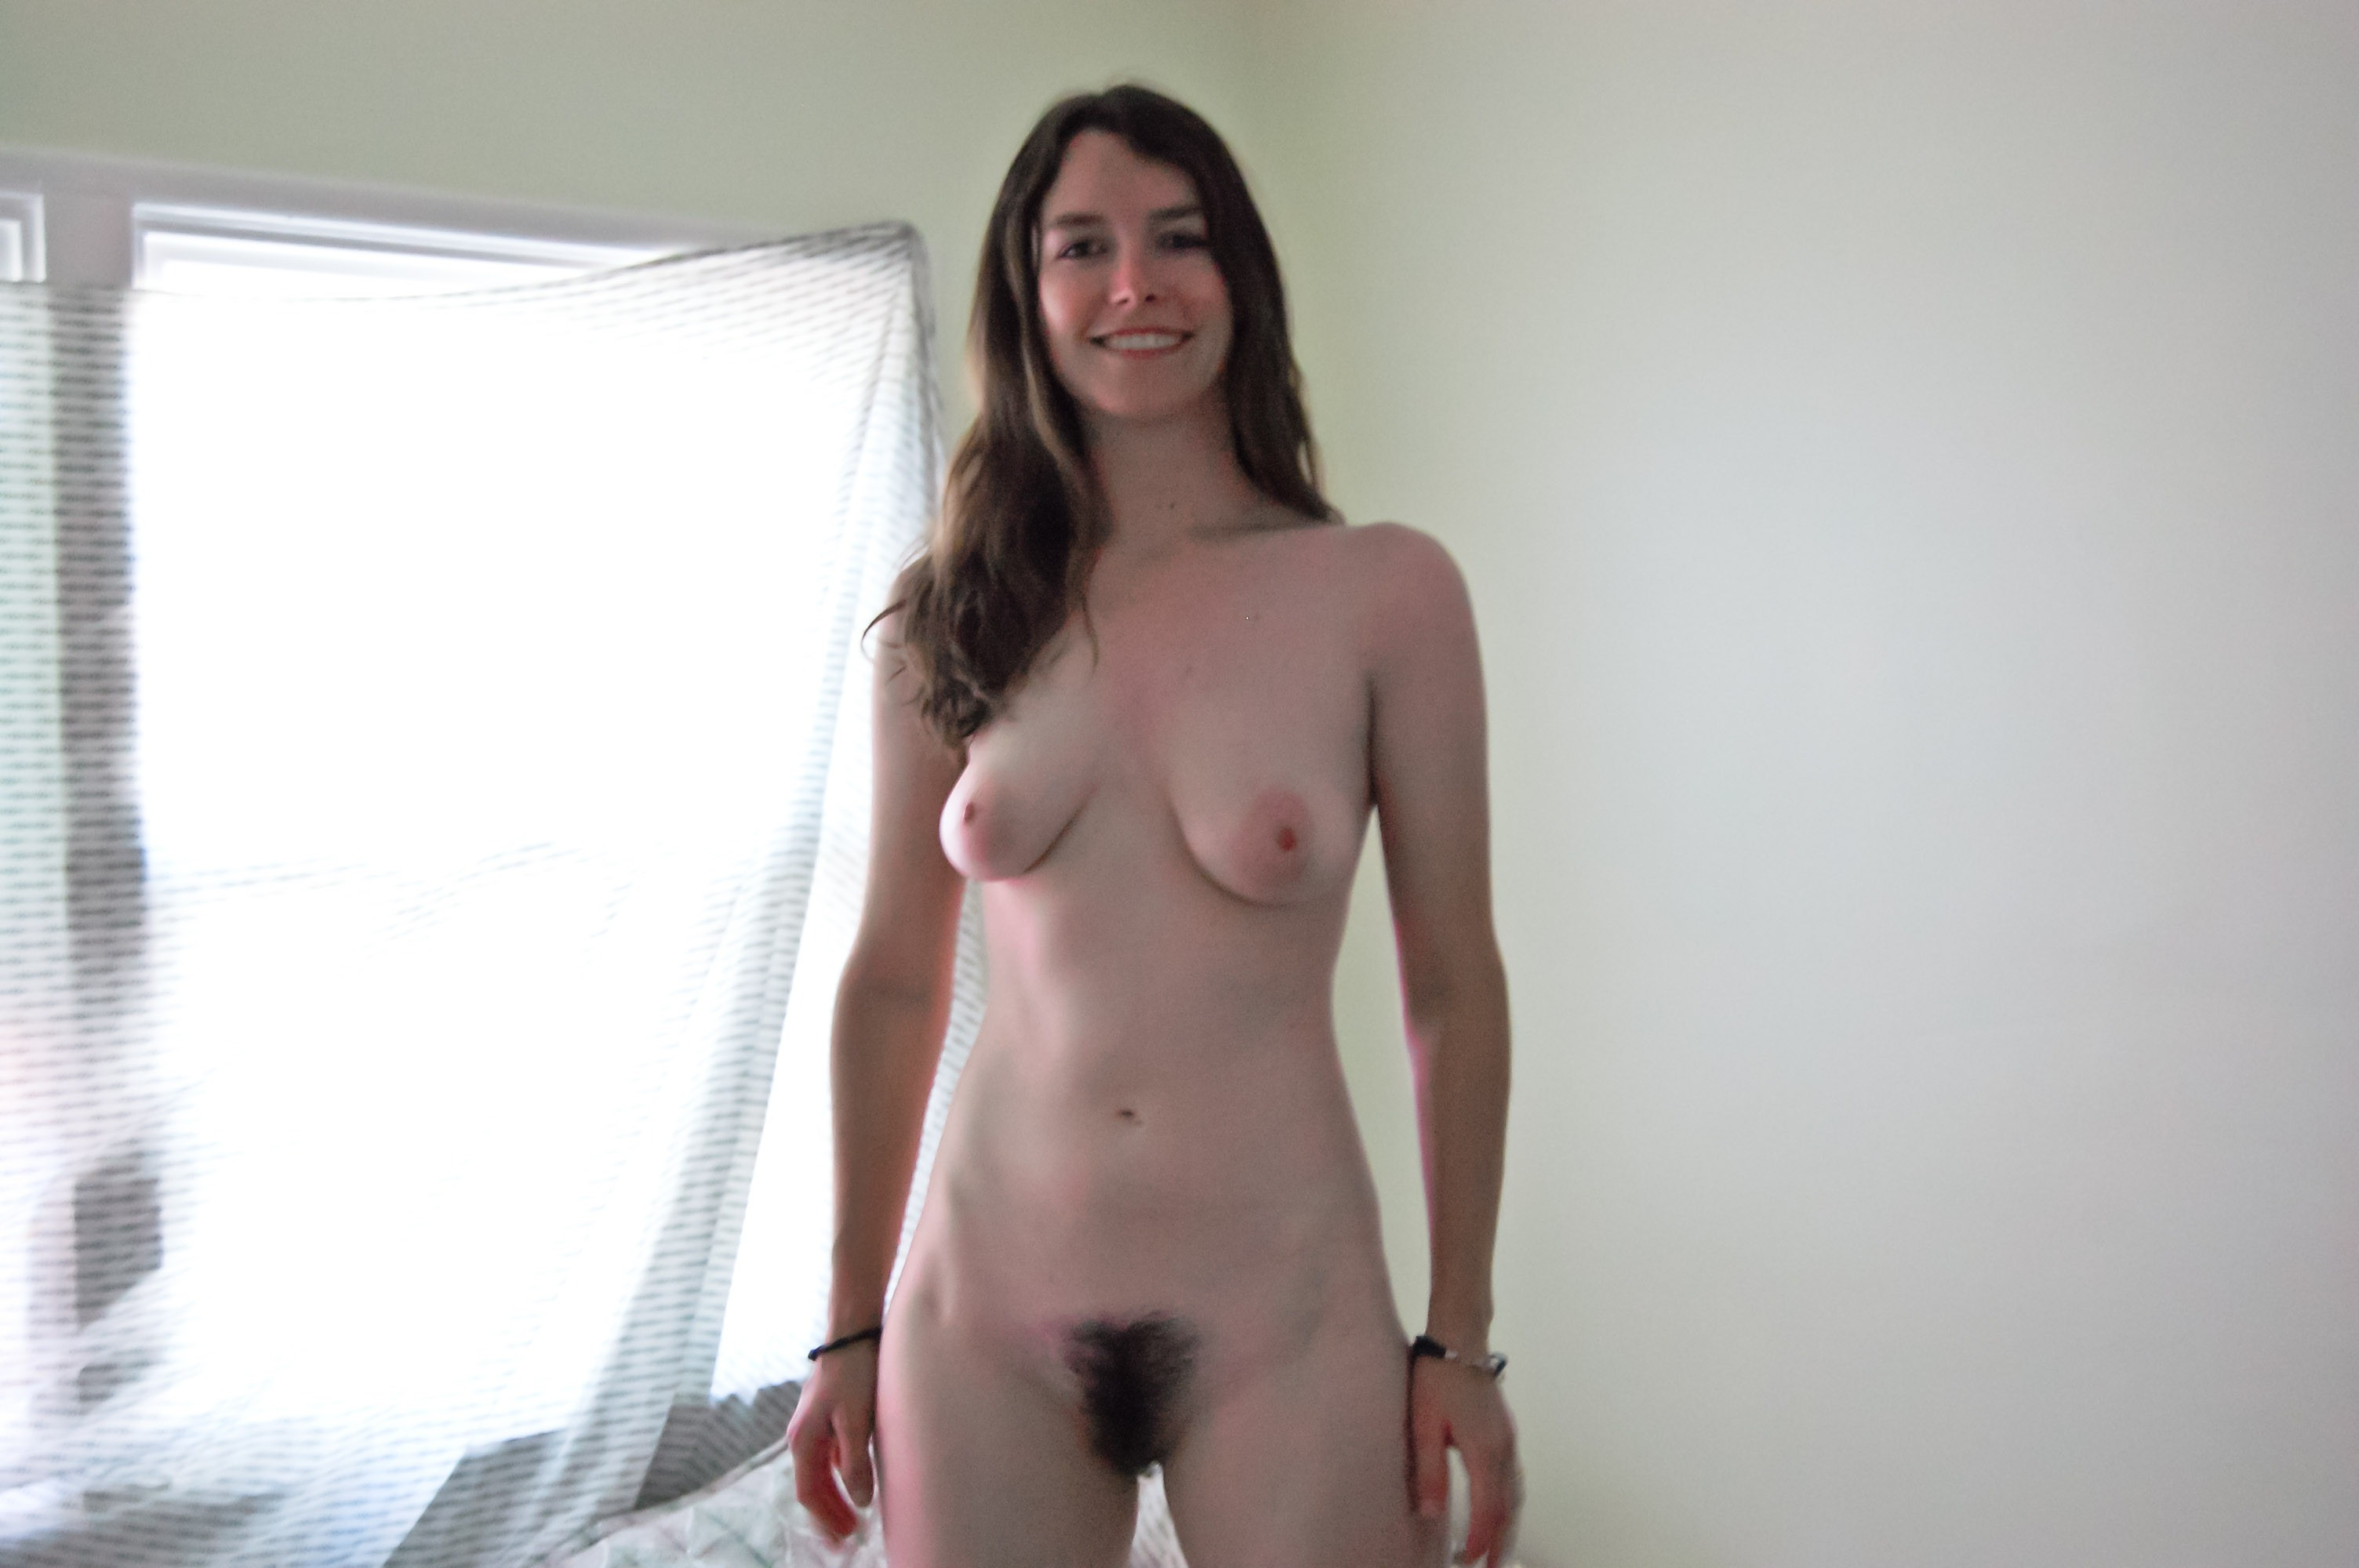 watch the latest sins life videos for free in with our Amateur, Bathroom, Bigboobs, Cougar, Housewife, Hugetits, Massivetits, Mature, Milf, Milfbathroom, Milfblonde, Milftits, Millymorris, Mom, Mommy, Nude, Pendulous, Perfectbod, Shower